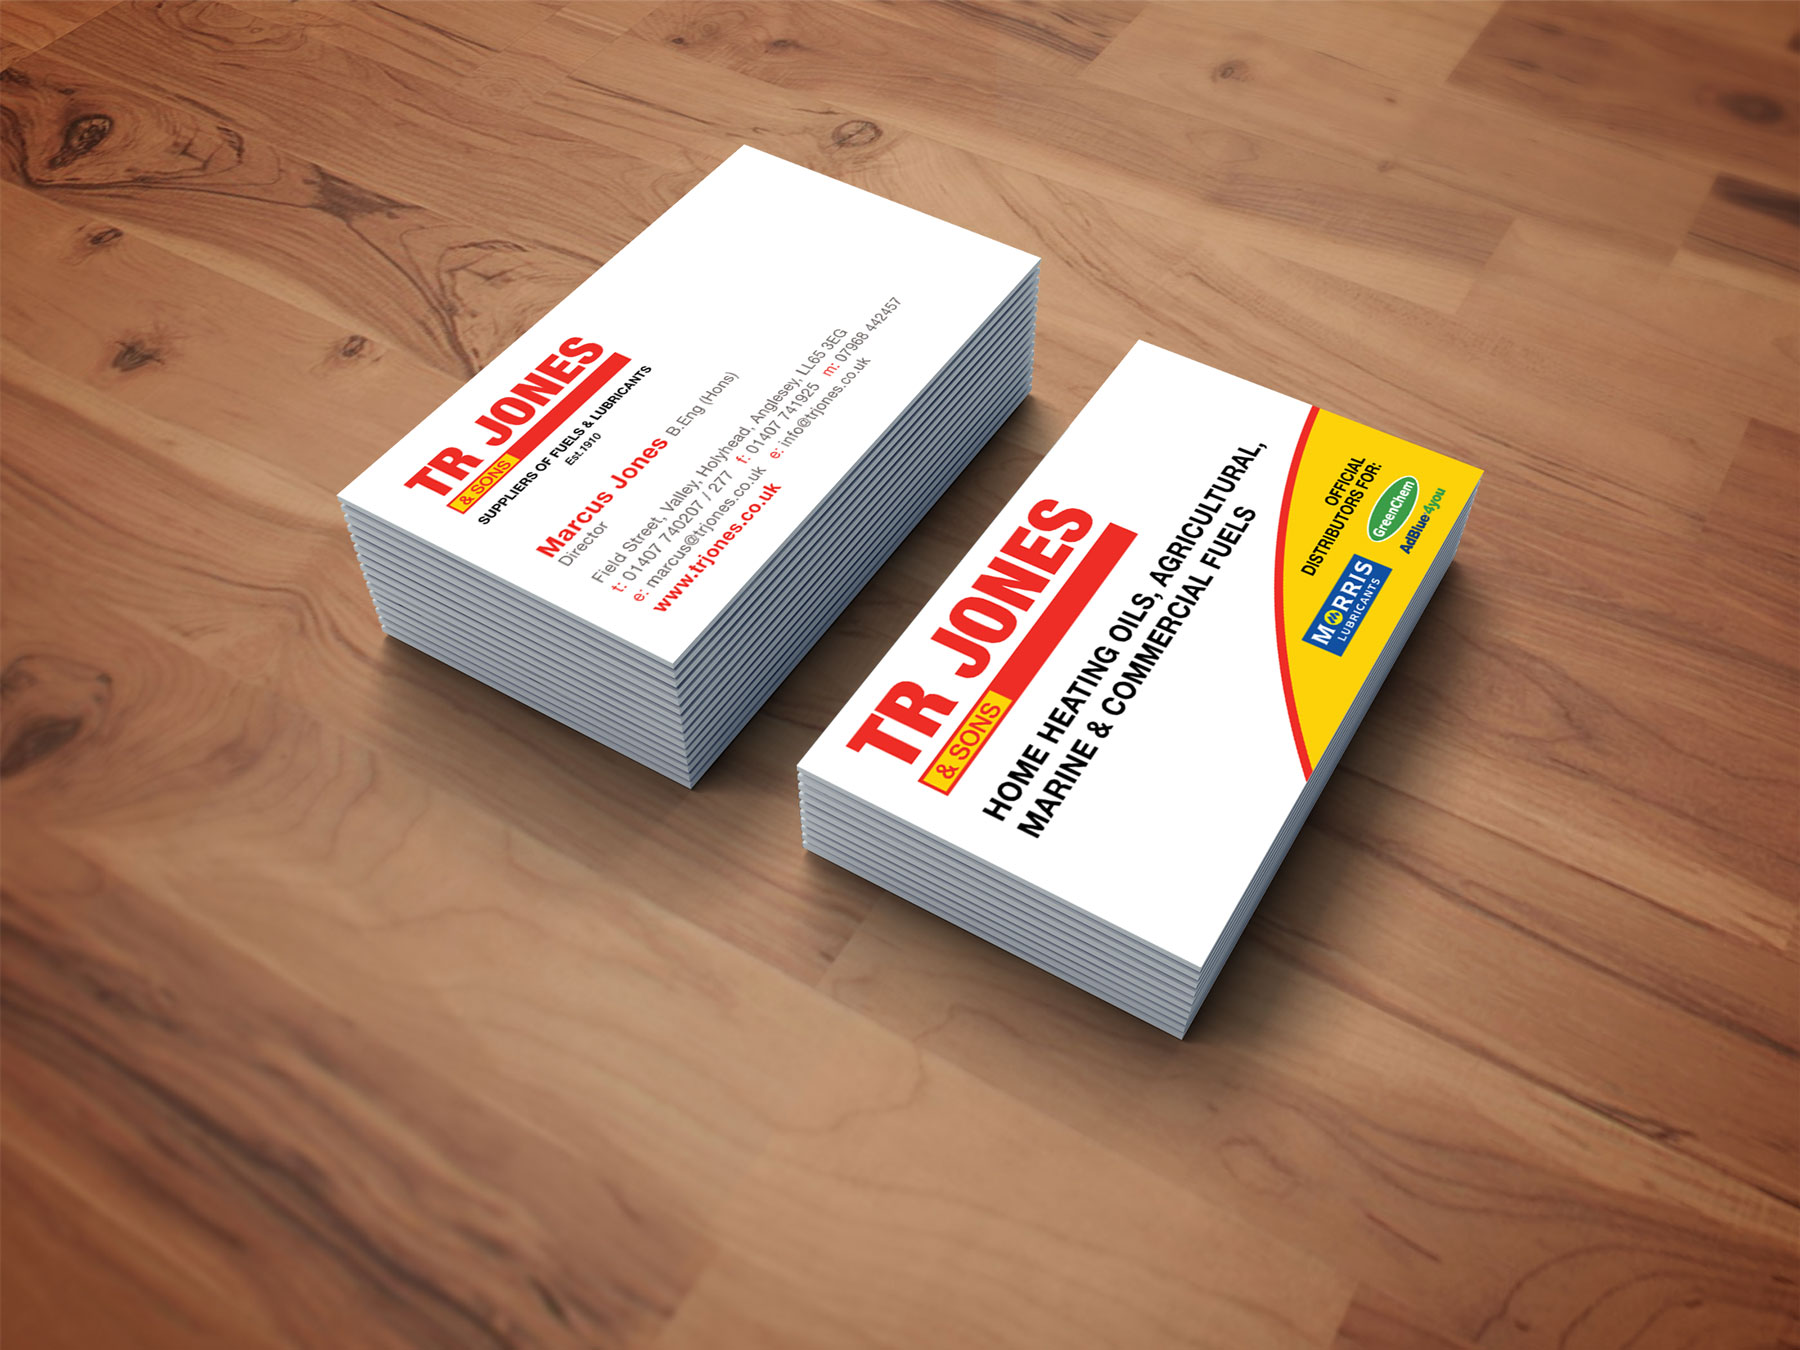 Owensutton graphic and web design anglesey tr jones sons business cards magicingreecefo Gallery